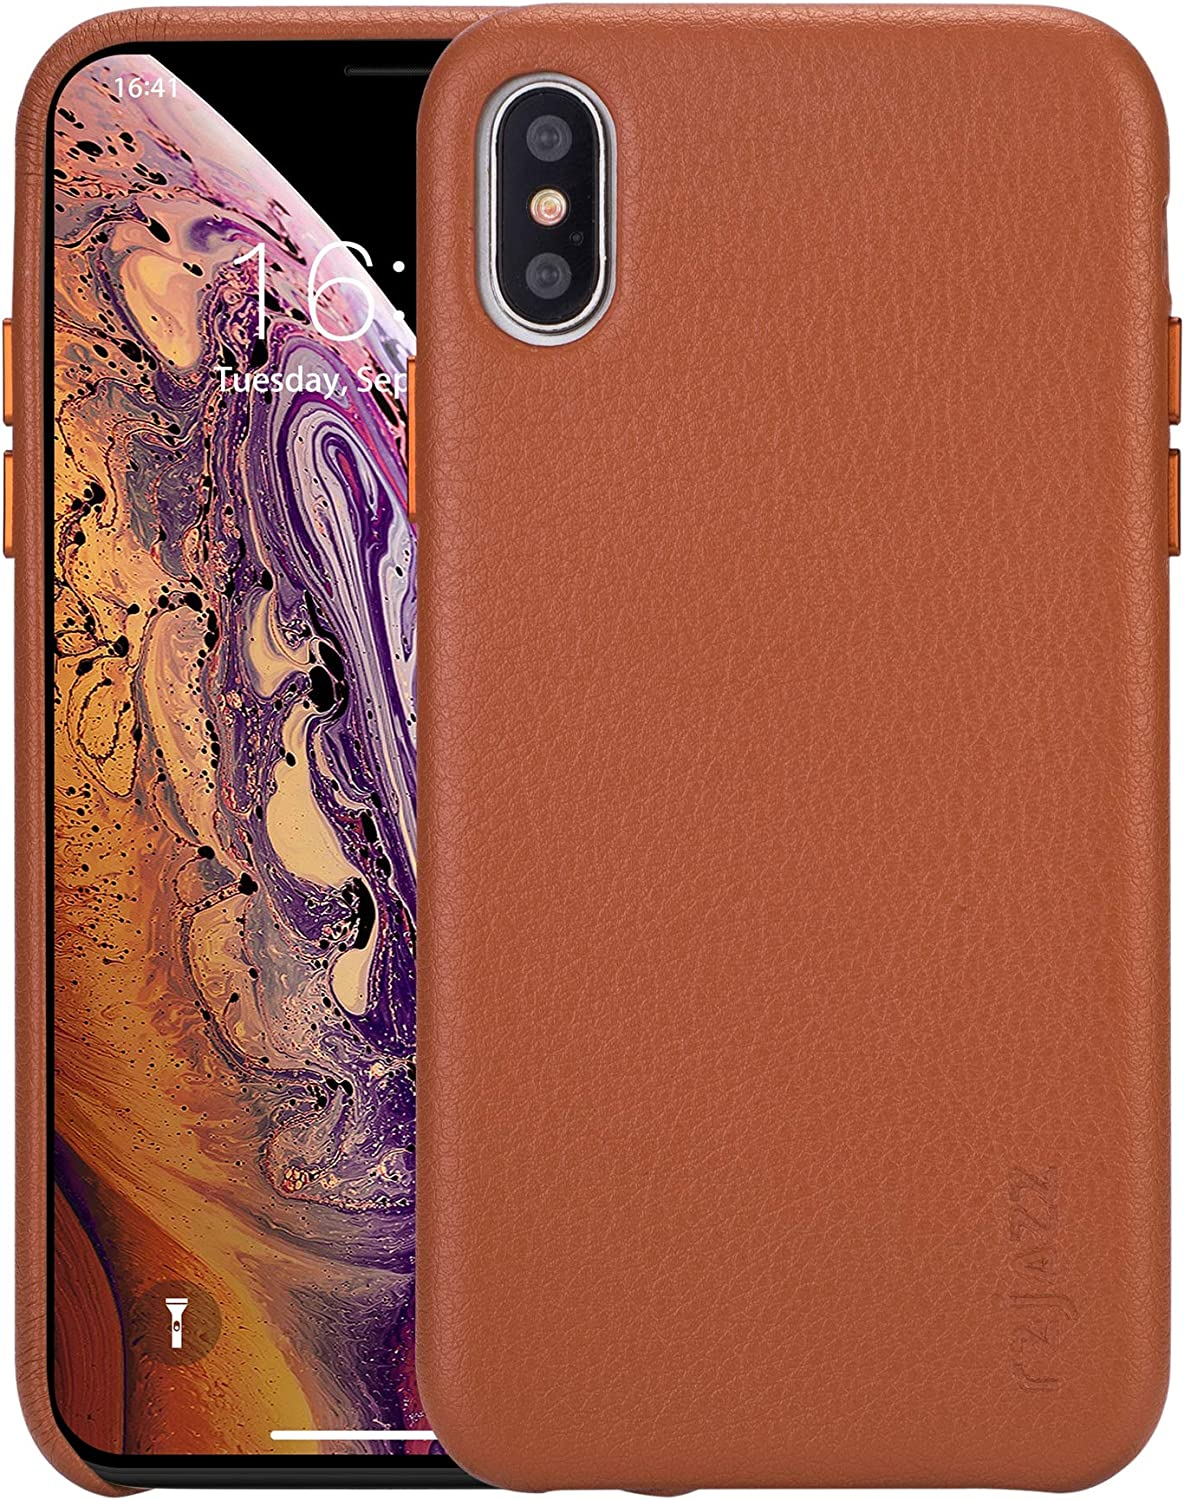 iPhone Xs max Case Rejazz Anti-Scratch iPhone Xs max Cover Genuine Leather Apple iPhone Cases for iPhone Xs max (6.5 Inch)(Brown)